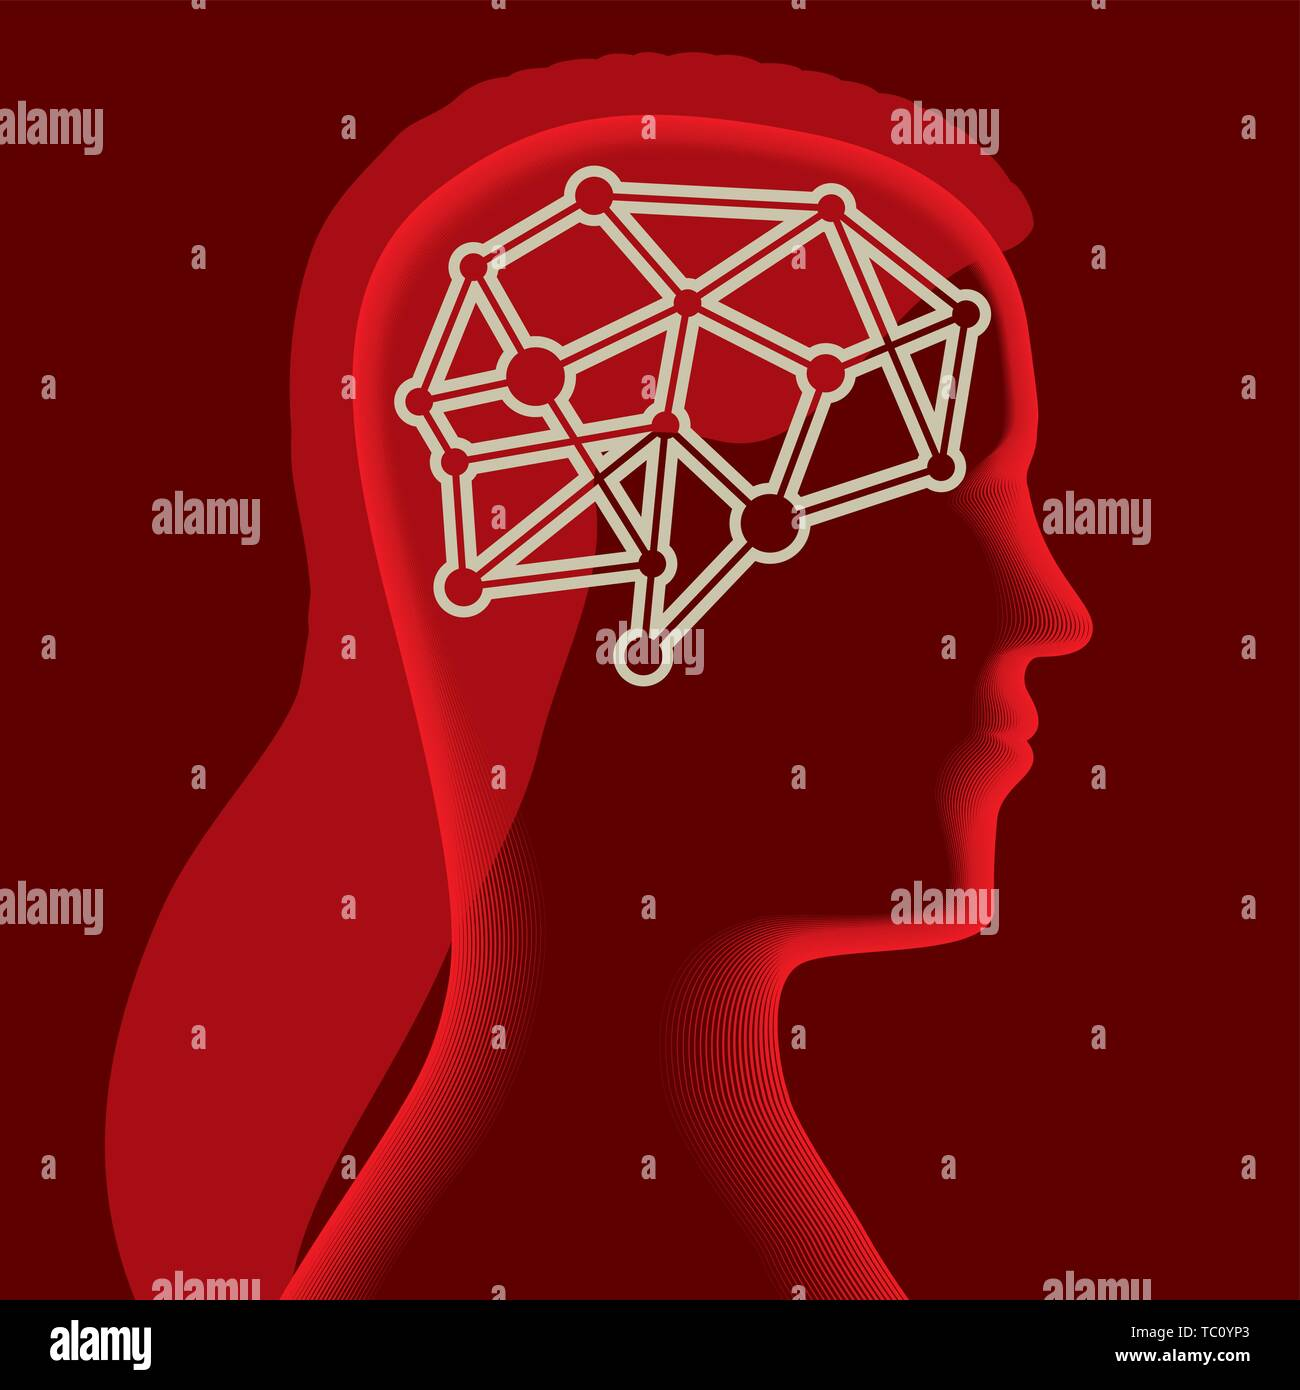 Vector illustration. Brain icon over a soft female head silhouette in red. - Stock Vector